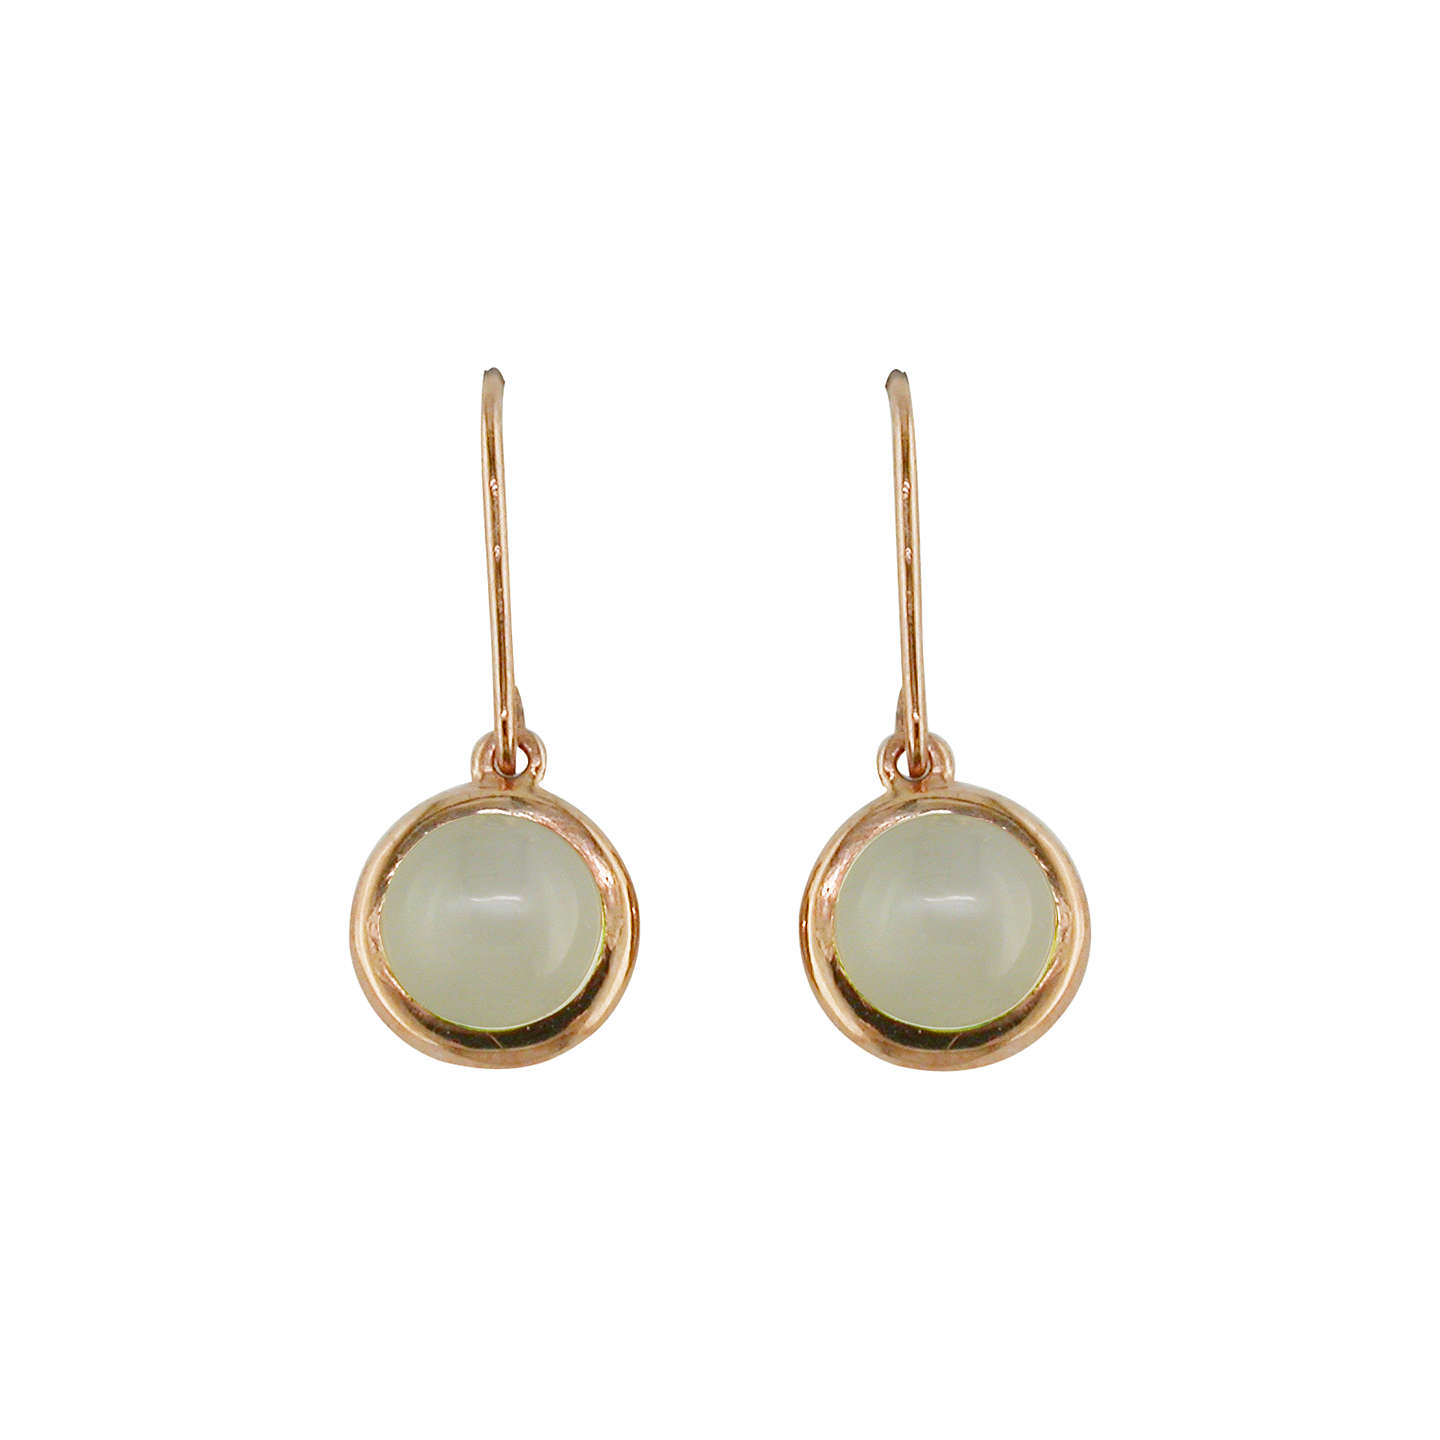 BuyLondon Road 9ct Rose Gold Pimlico Bubble Drop Earrings, Moonstone Online at johnlewis.com